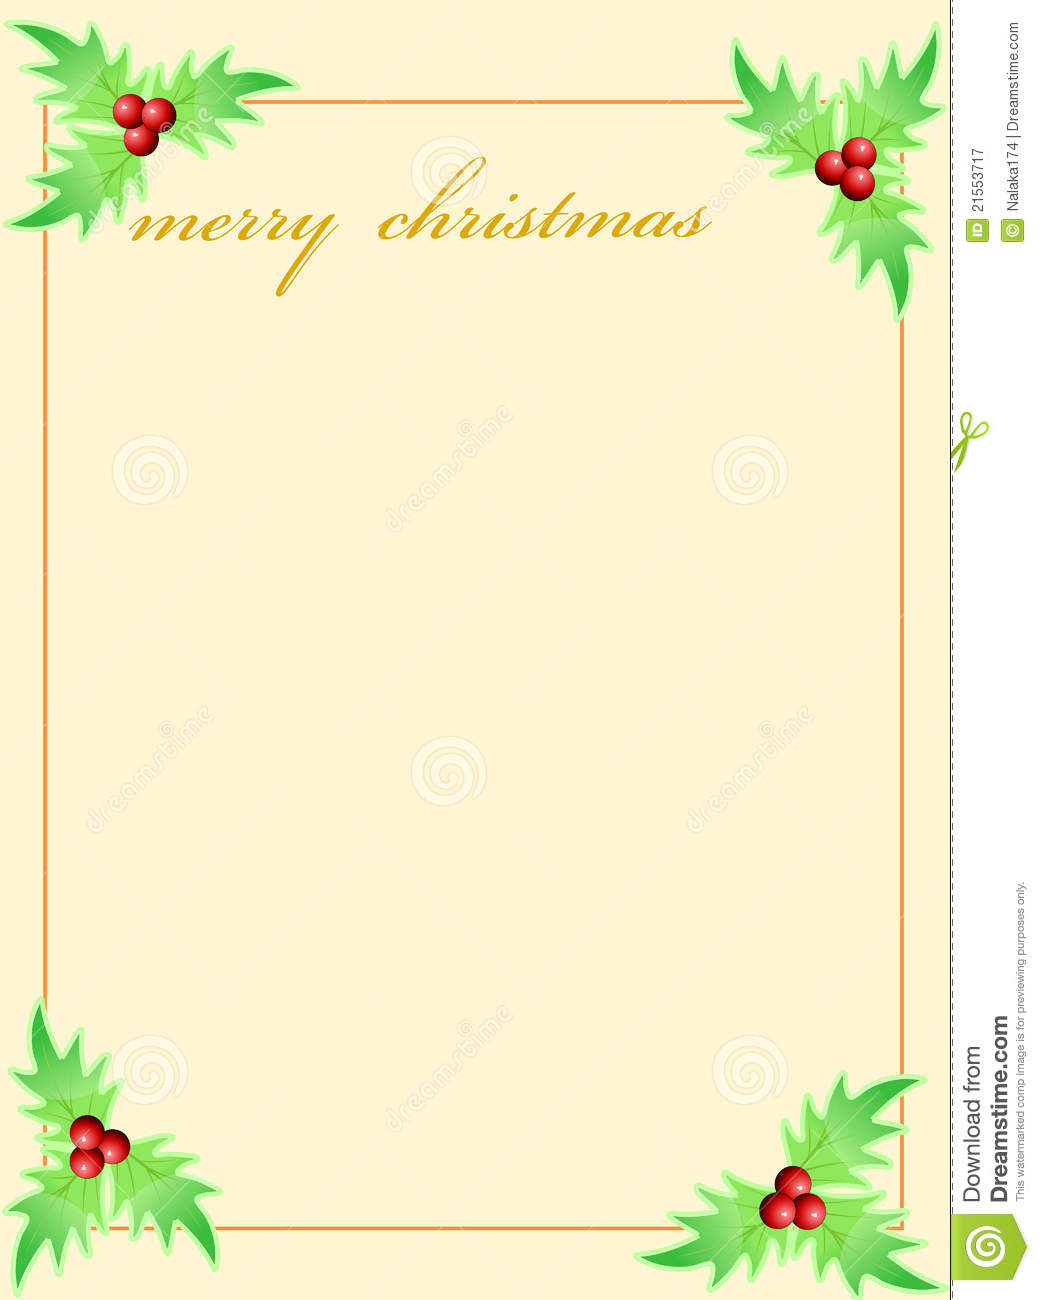 free holiday card templates - 16 holiday greeting card template images free christmas